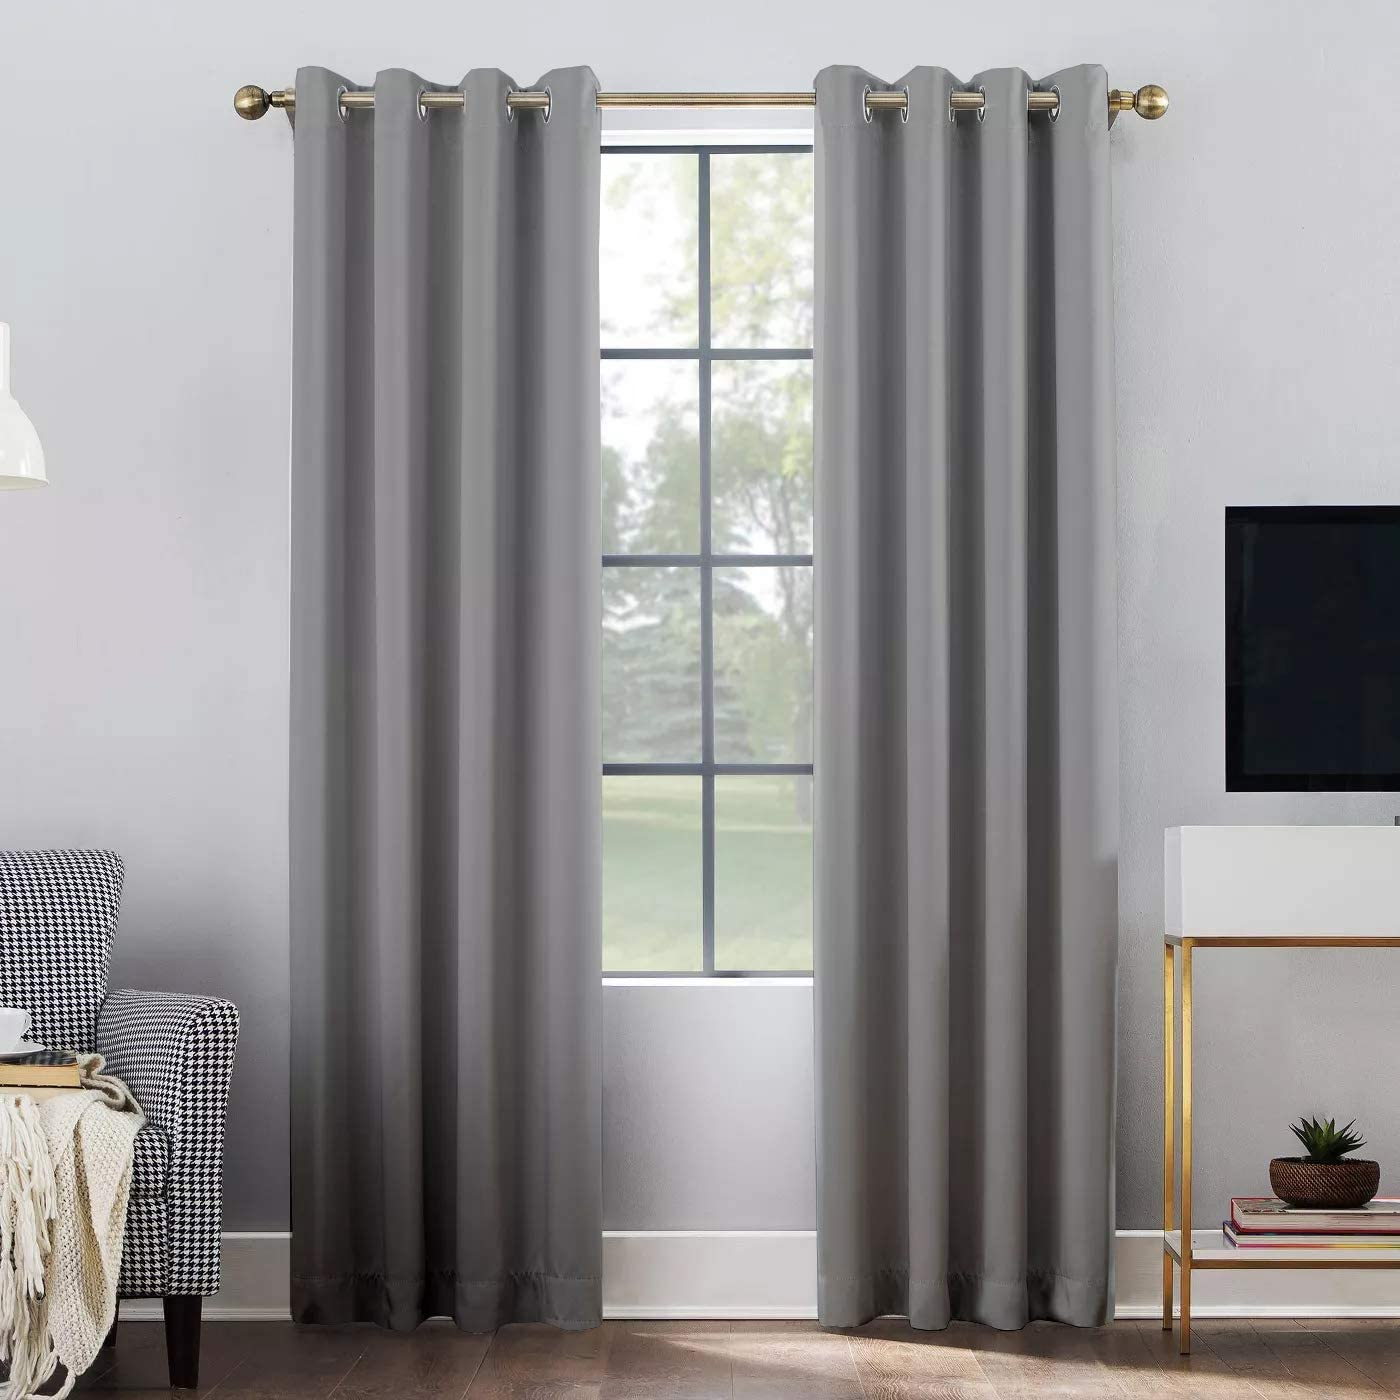 Set of 2 Panels 100 Blackout,Soft and Silky Curtains Thermal Insulated